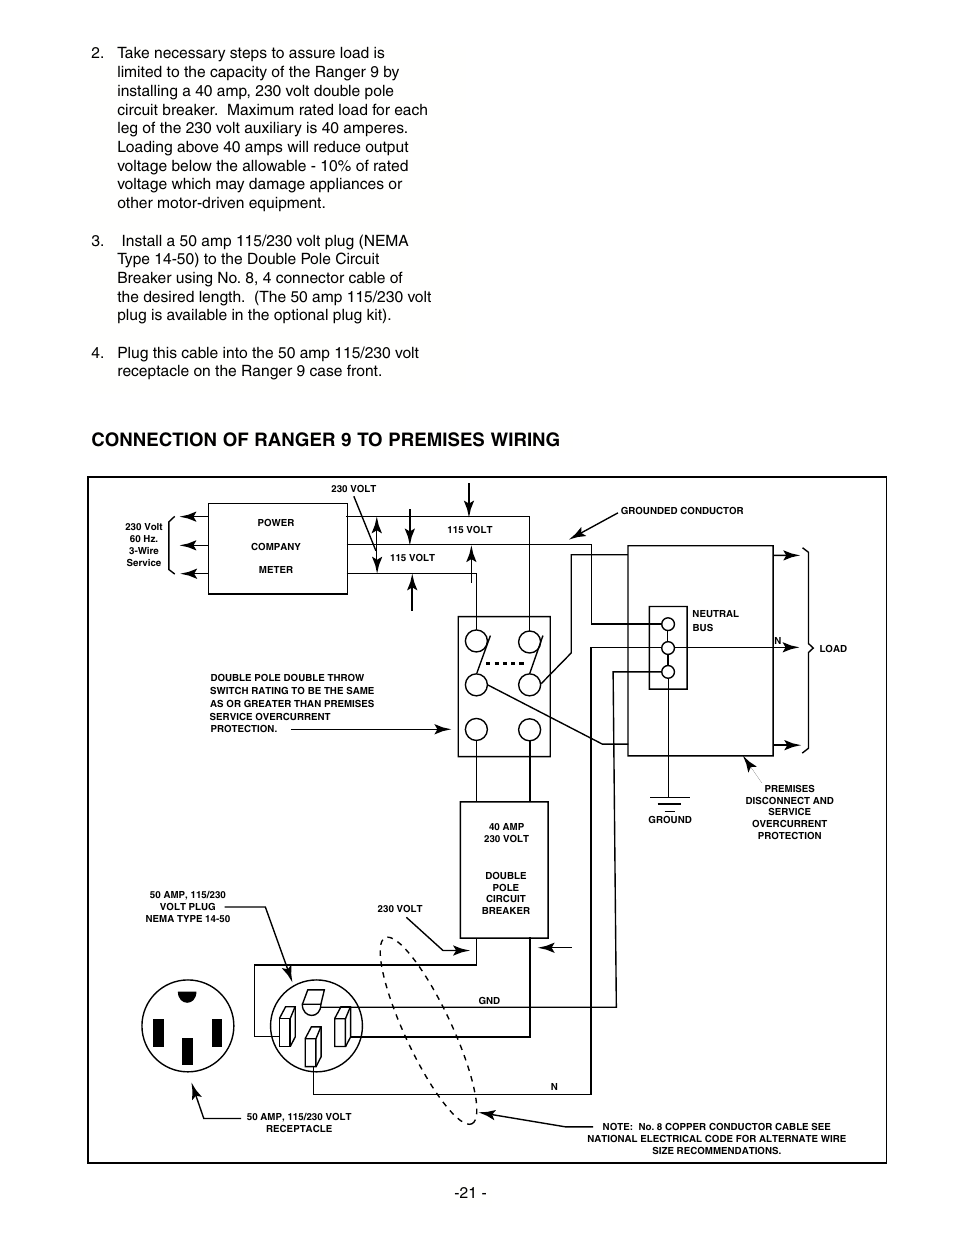 Connection of ranger 9 to premises wiring | Lincoln Electric IM511 on standard receptacle wiring-diagram, l6-30r receptacle wiring-diagram, nema twist plug and receptacle chart, 50 amp receptacle wiring-diagram, nema 14-50r wiring-diagram, nema 10-30r wiring-diagram, nema l14-30p wiring-diagram, l5-30r receptacle wiring-diagram,